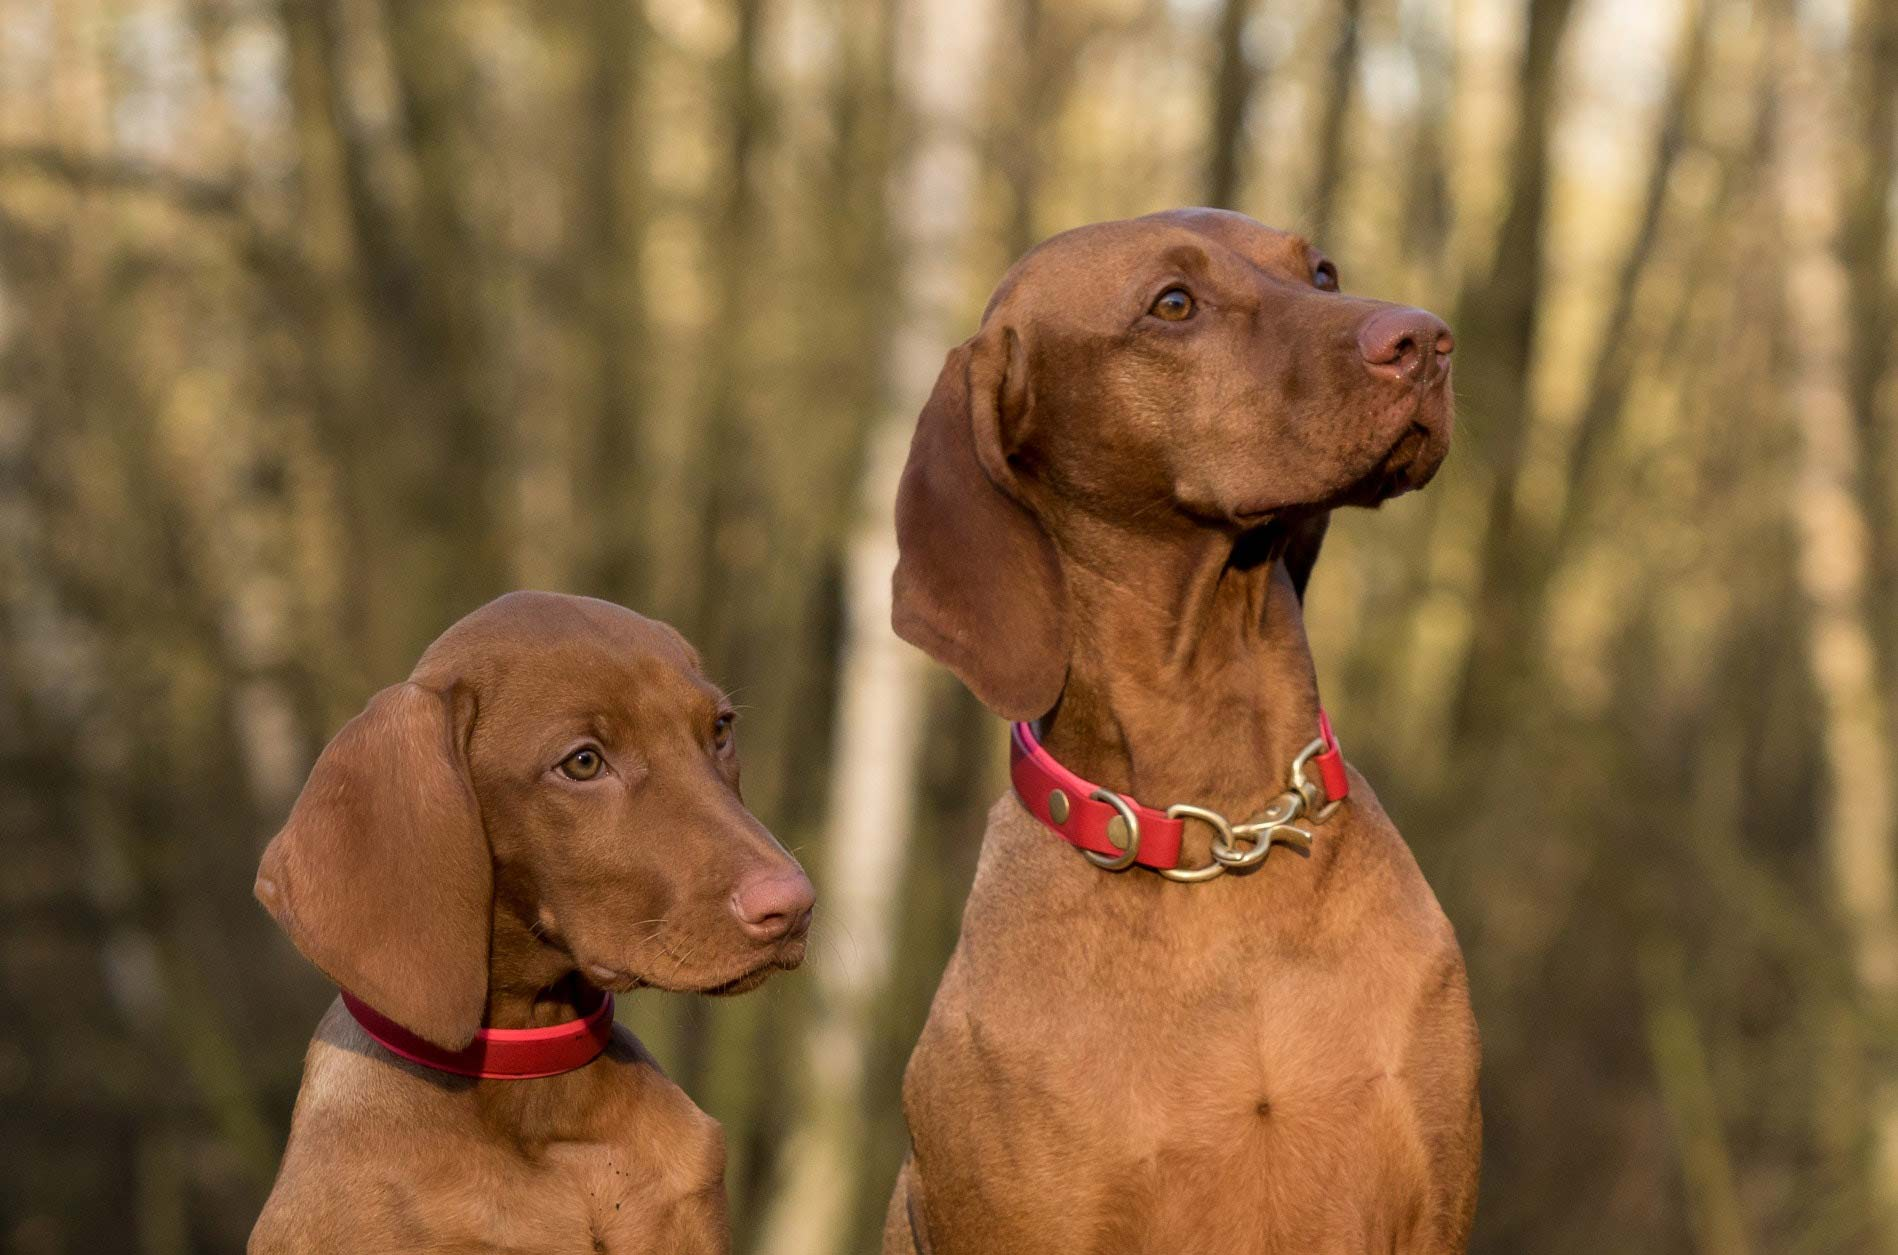 Two brown dogs sitting nicely